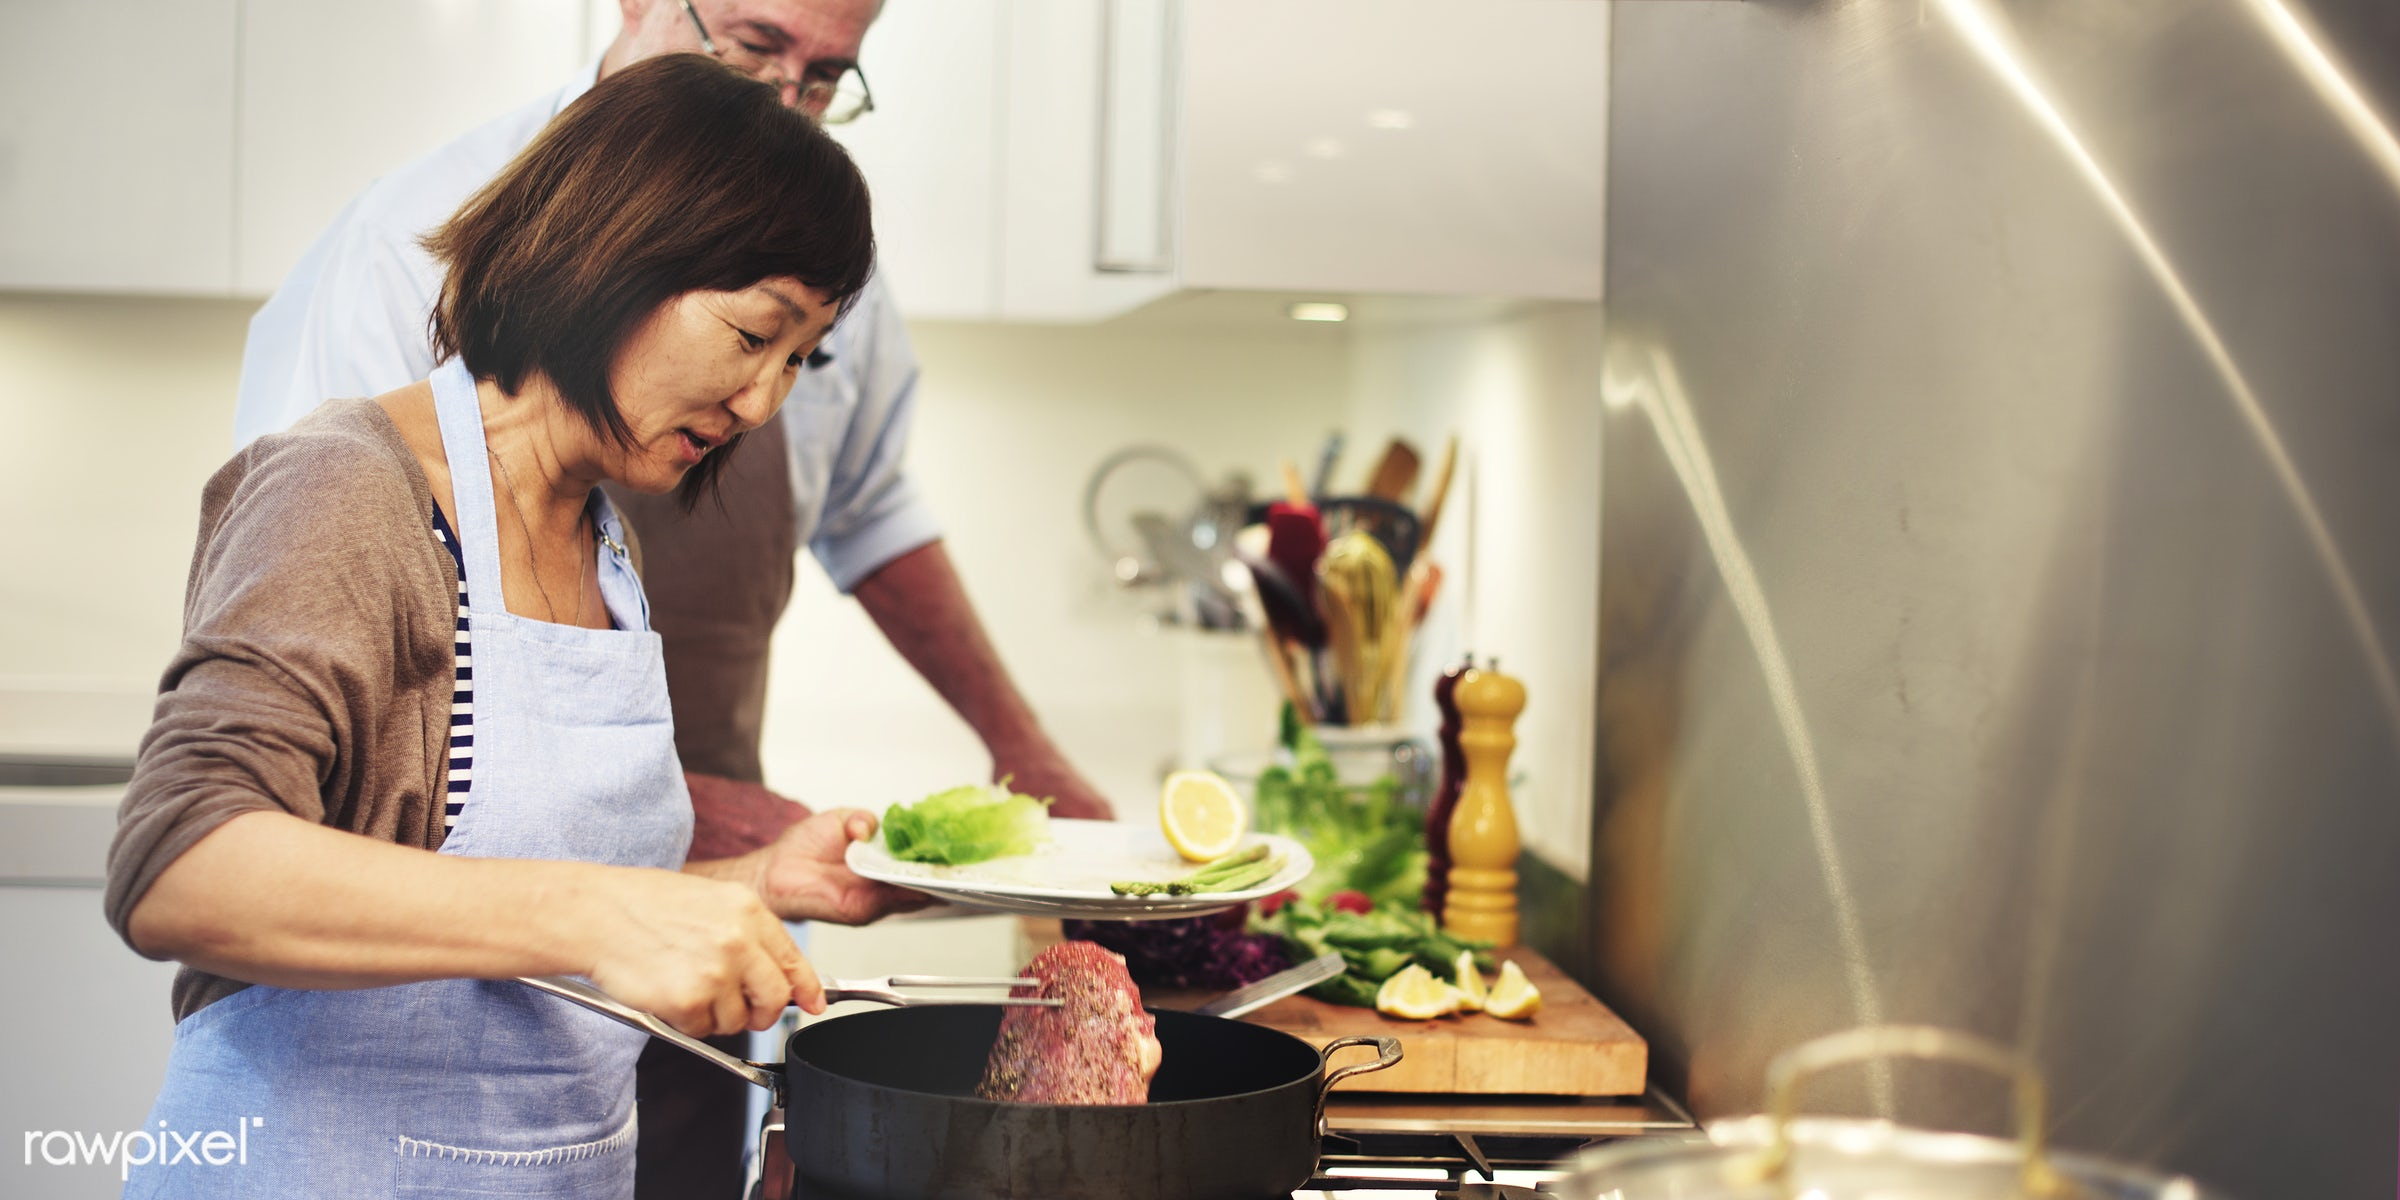 Senior couple cooking in the kitchen - cooking, kitchen, food, together, togetherness, couple, home, housework, frying,...